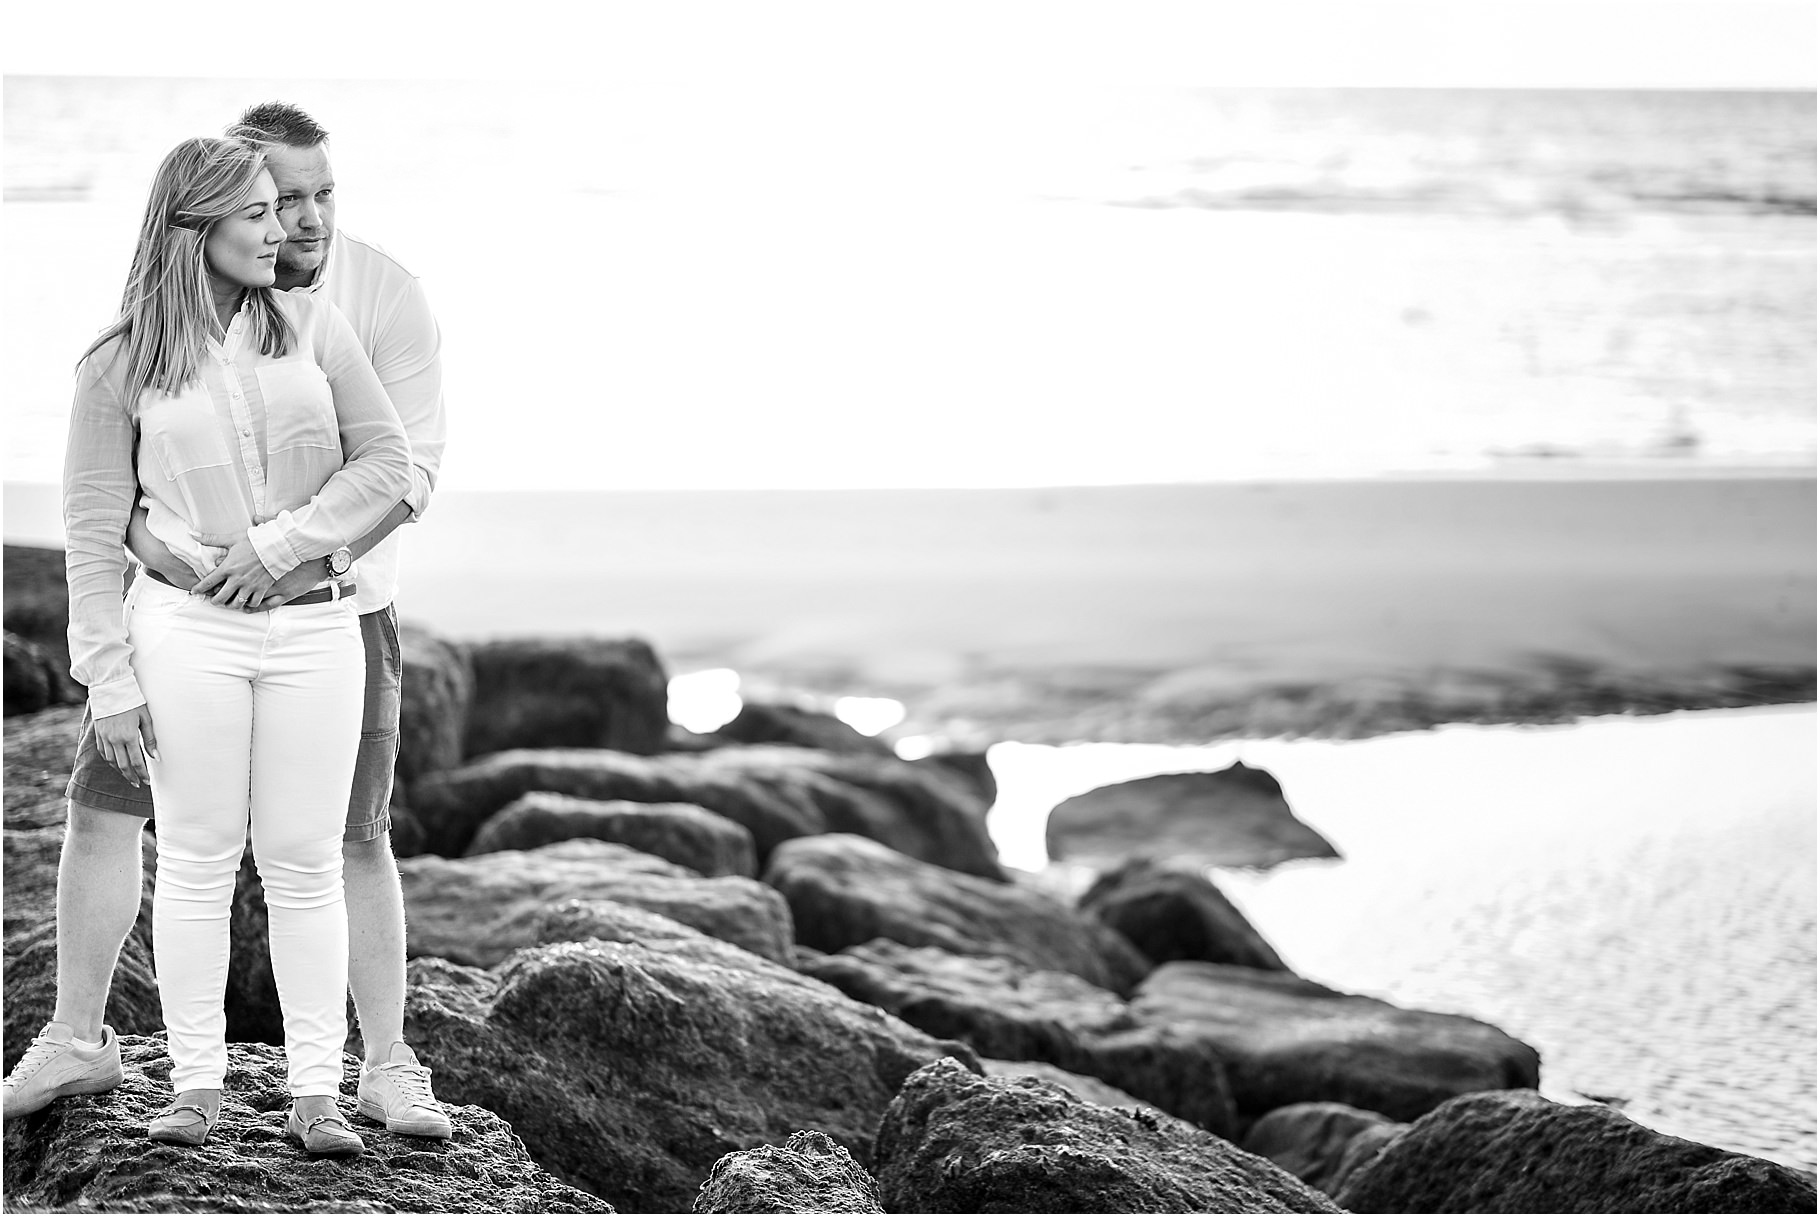 cleveleys-beach-pre-wedding-shoot-15.jpg